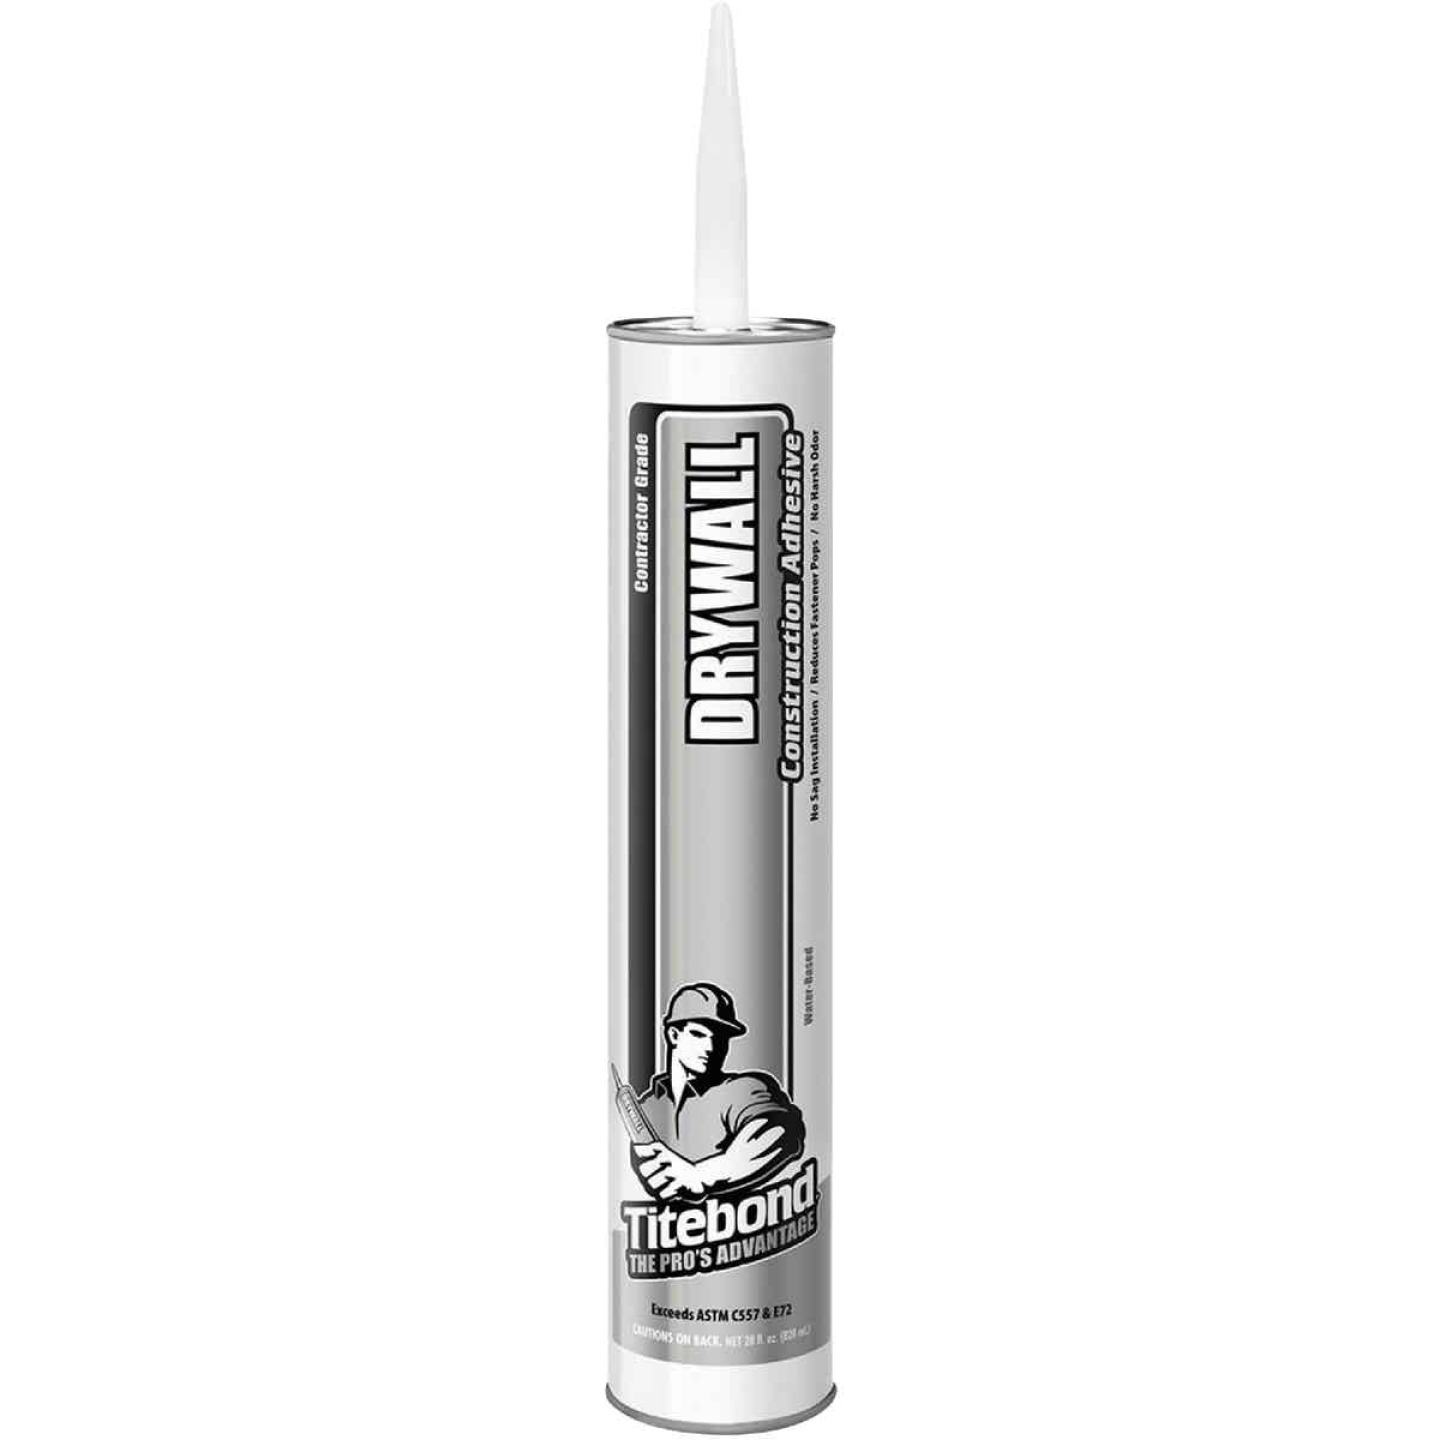 Titebond 28 Oz. Contractor VOC Grade Drywall Adhesive Image 1